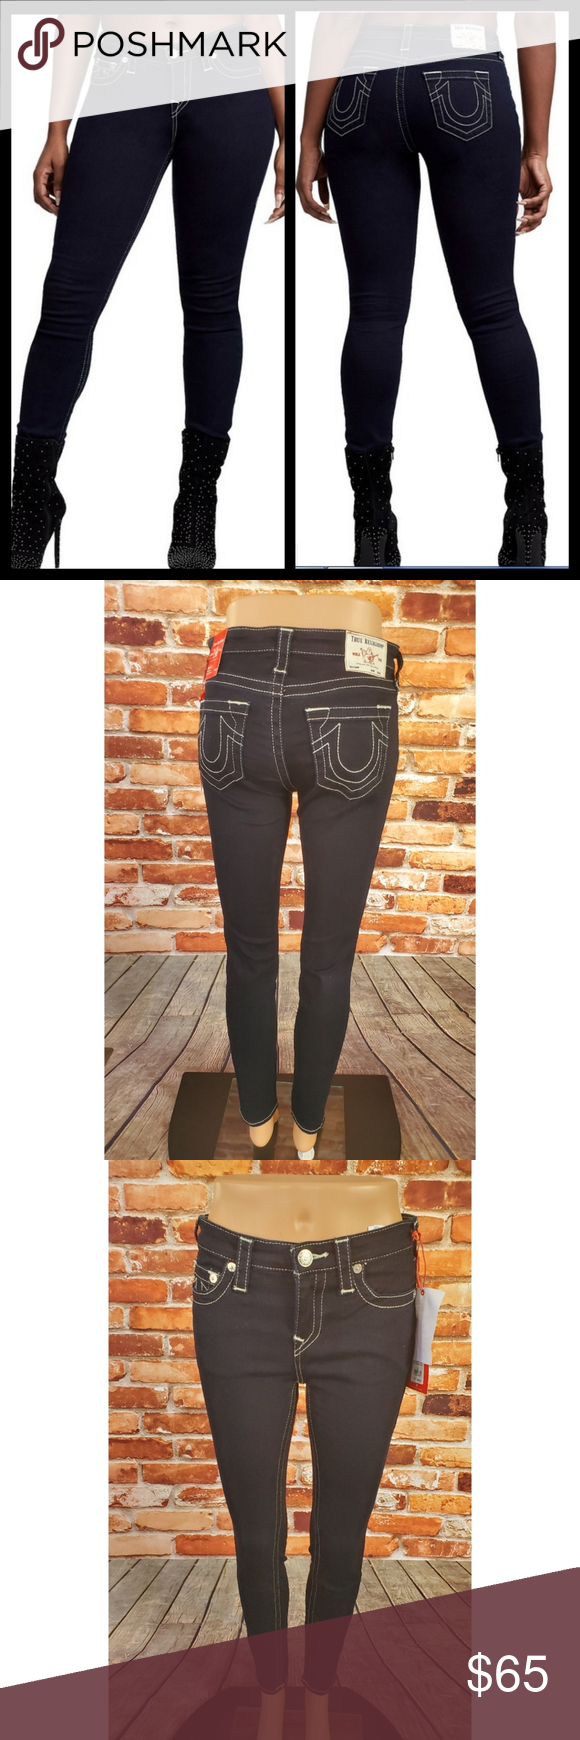 True Religion Halle Super Skinny Mid Rise Jeans 27